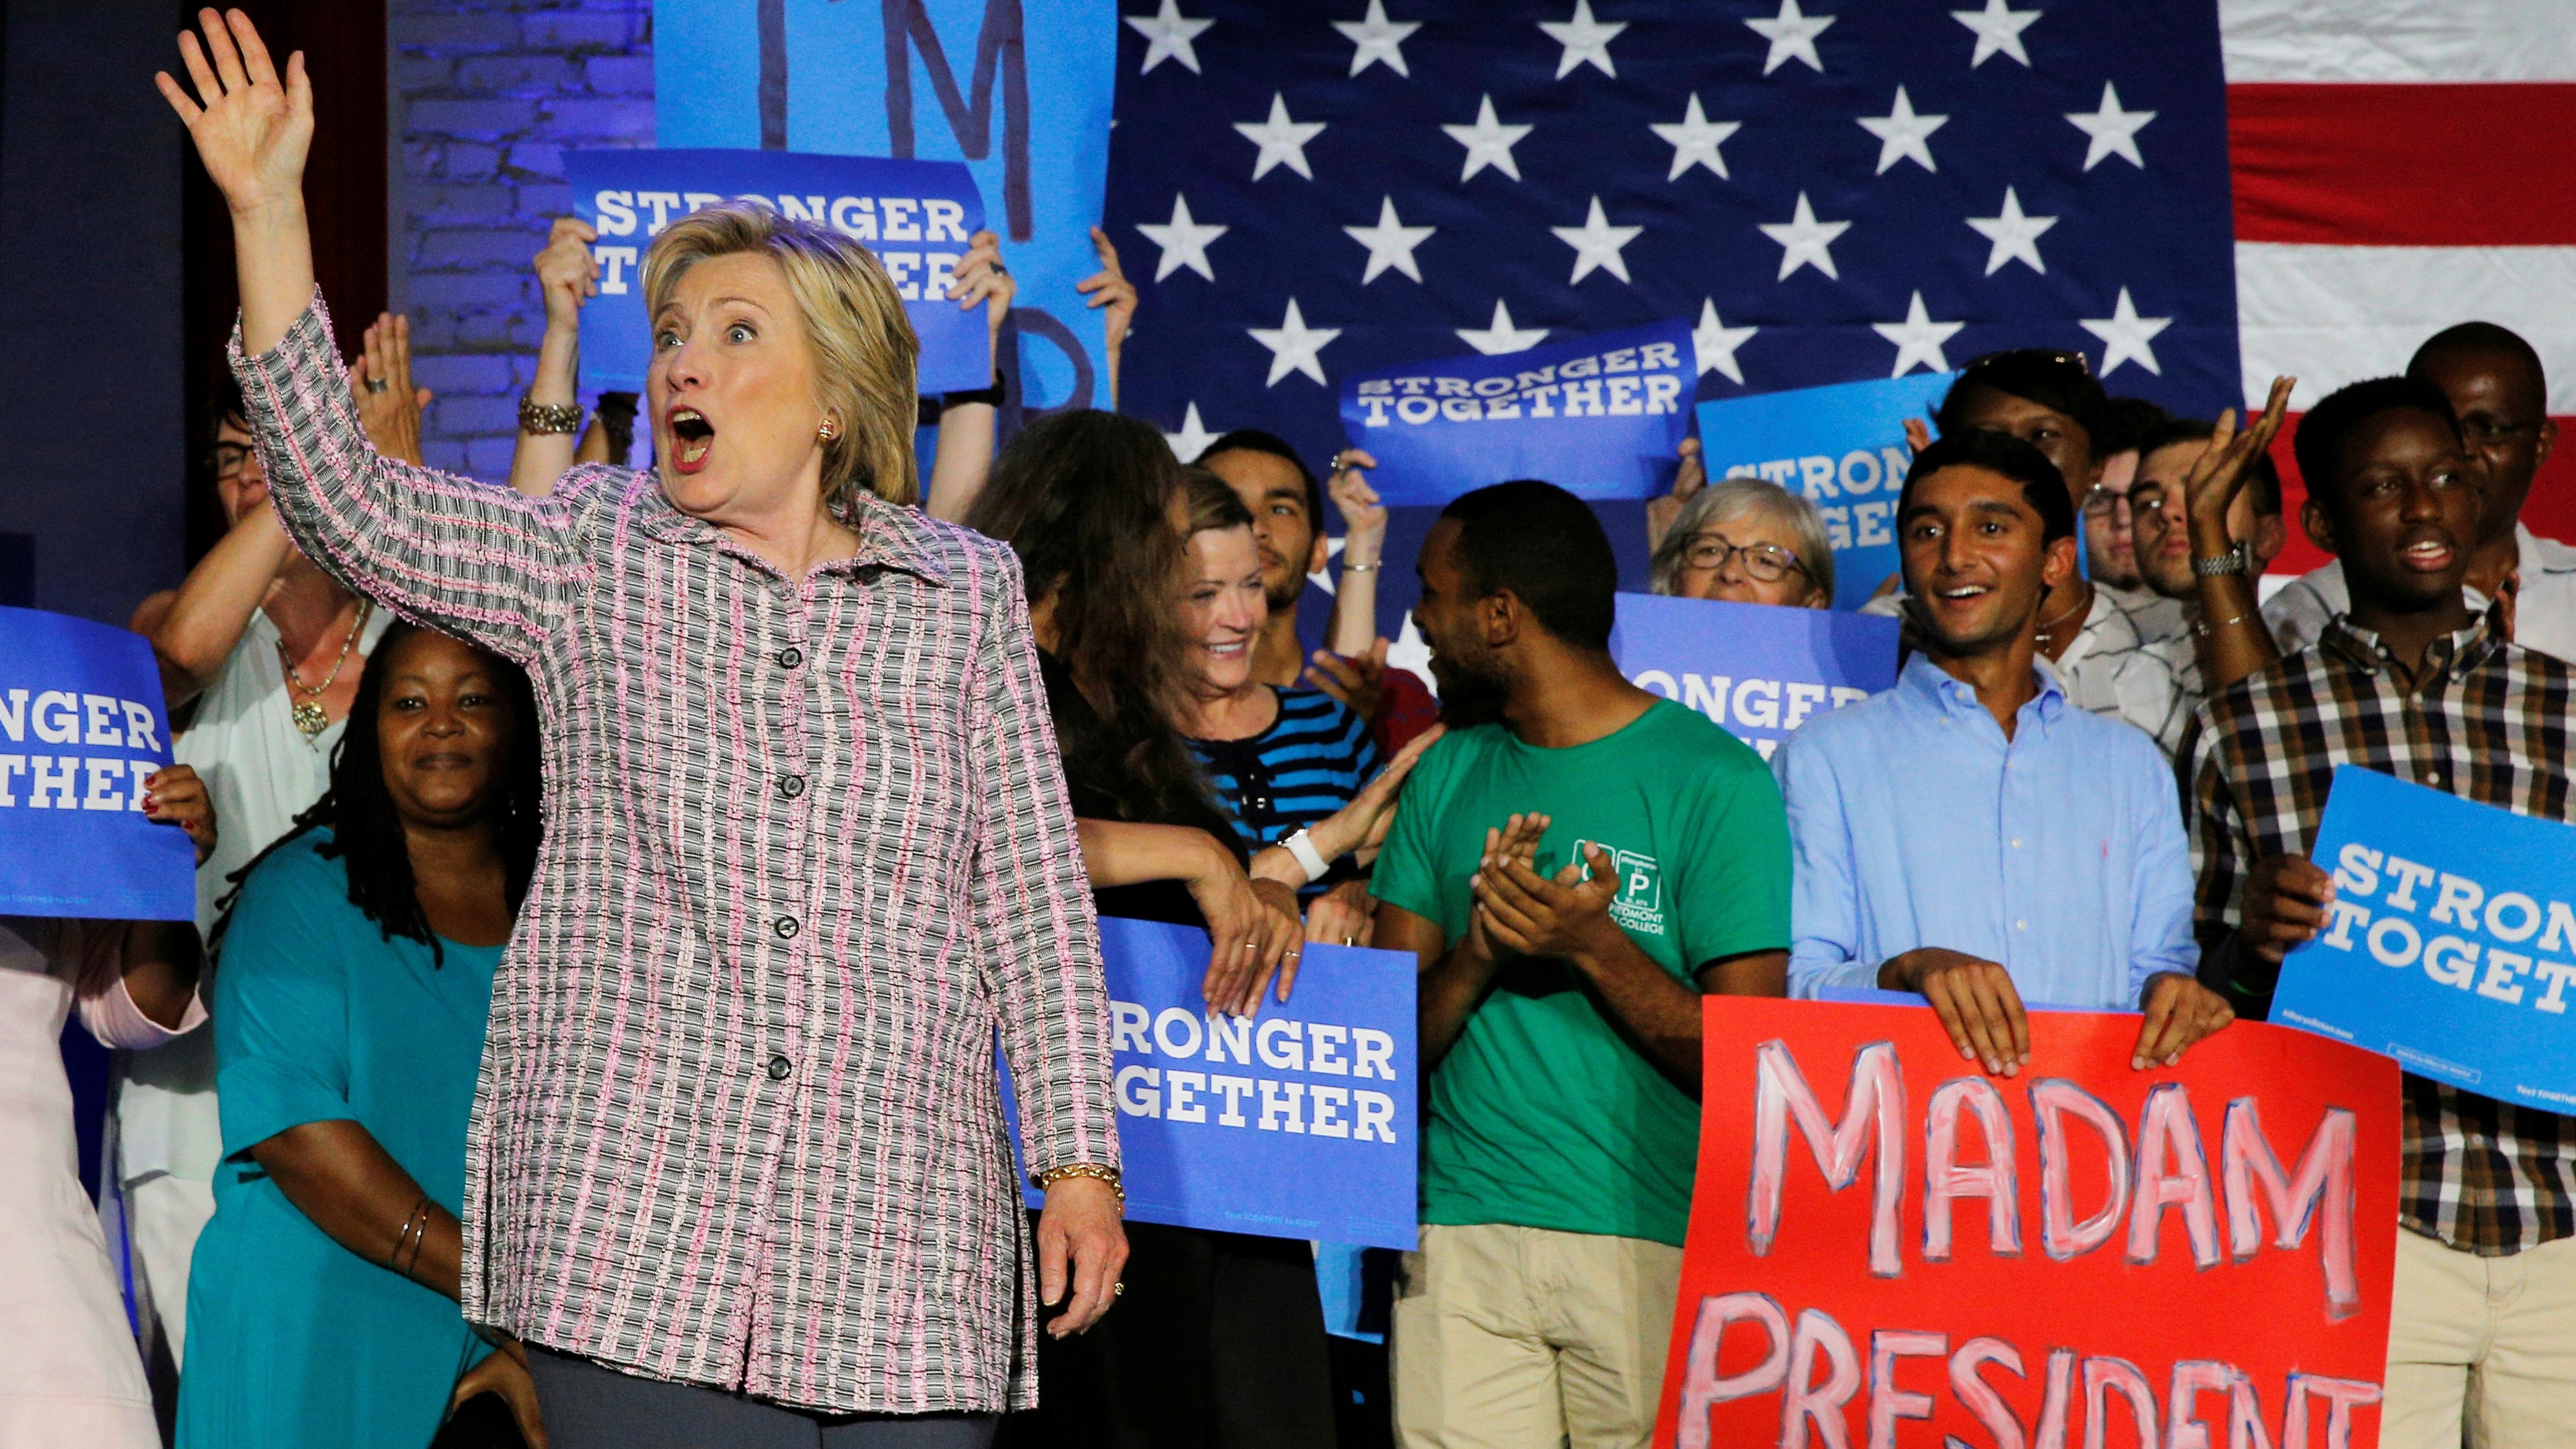 U.S. Democratic presidential candidate Hillary Clinton reacts to the cheers from campaign volunteers in Charlotte, North Carolina, U.S. July 25, 2016.  REUTERS/Brian Snyder - RTSJKK2